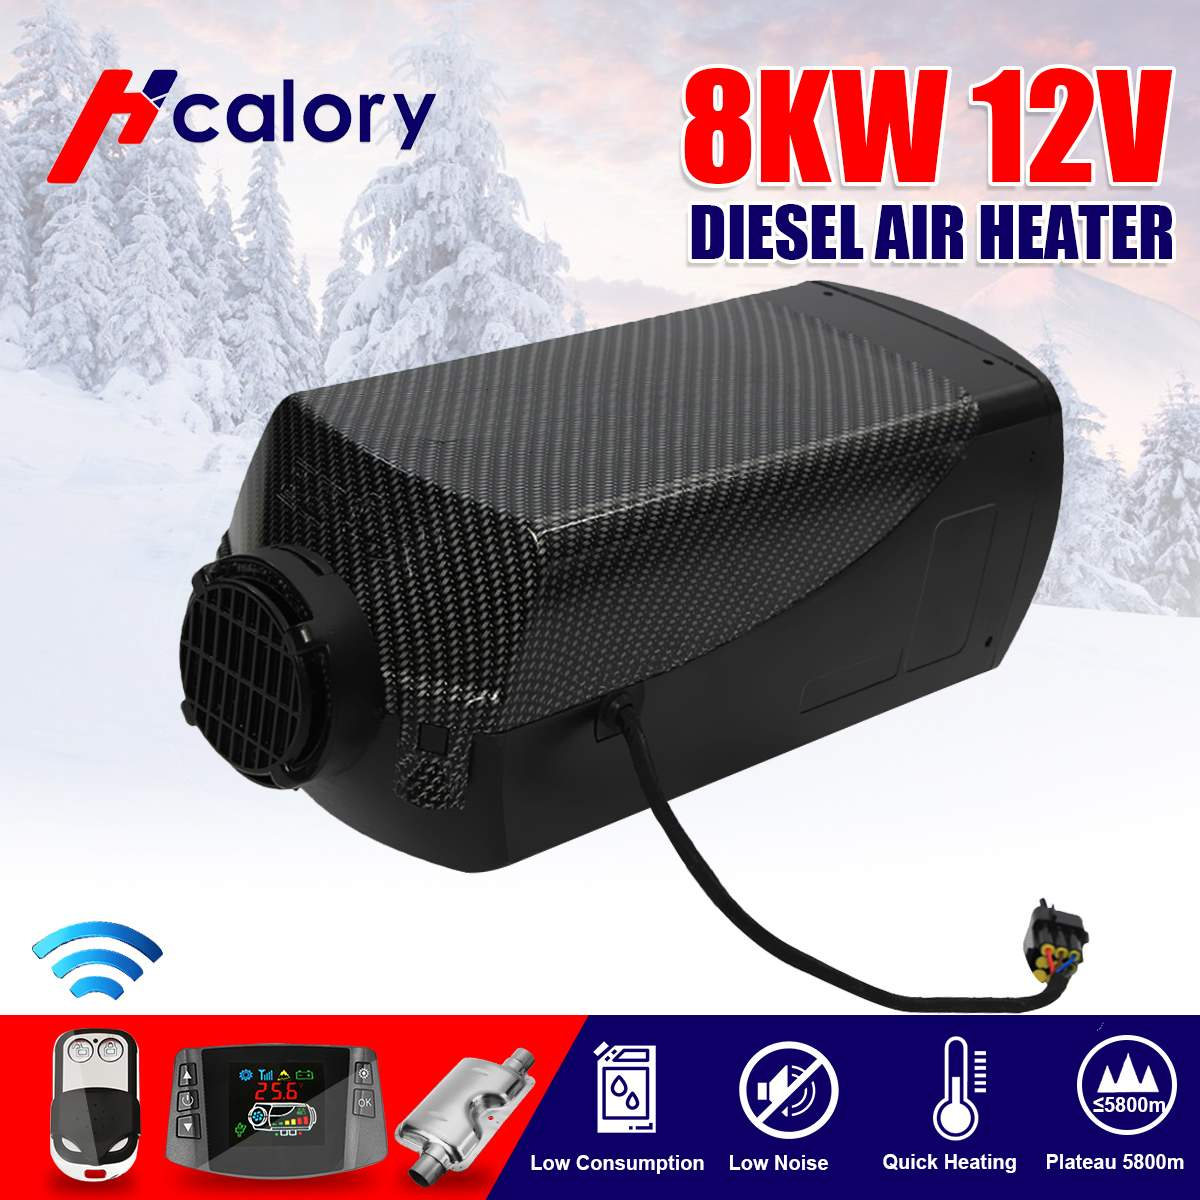 Hcalory Car Heater 8KW 12V/24V Air Diesel Heater LCD Monitor + <font><b>15L</b></font> <font><b>Tank</b></font> Remote Control for webasto RV Boats Trailer Truck image